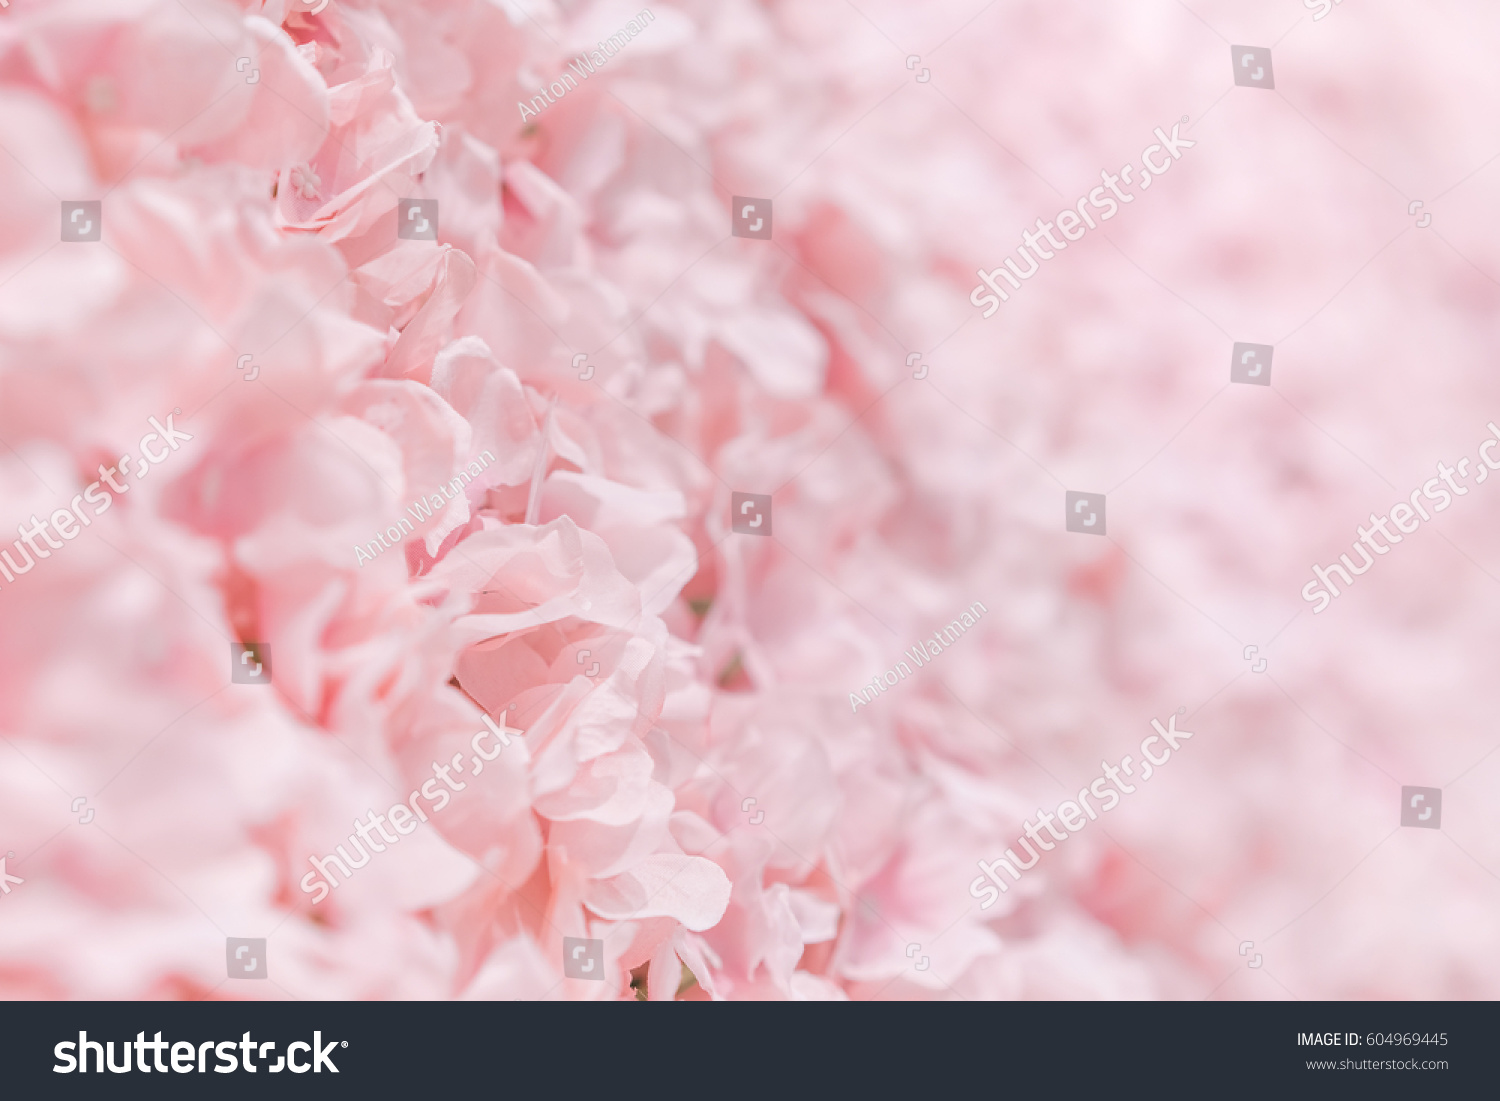 Pink Fake Flowers Background Texture Stock Photo 100 Legal